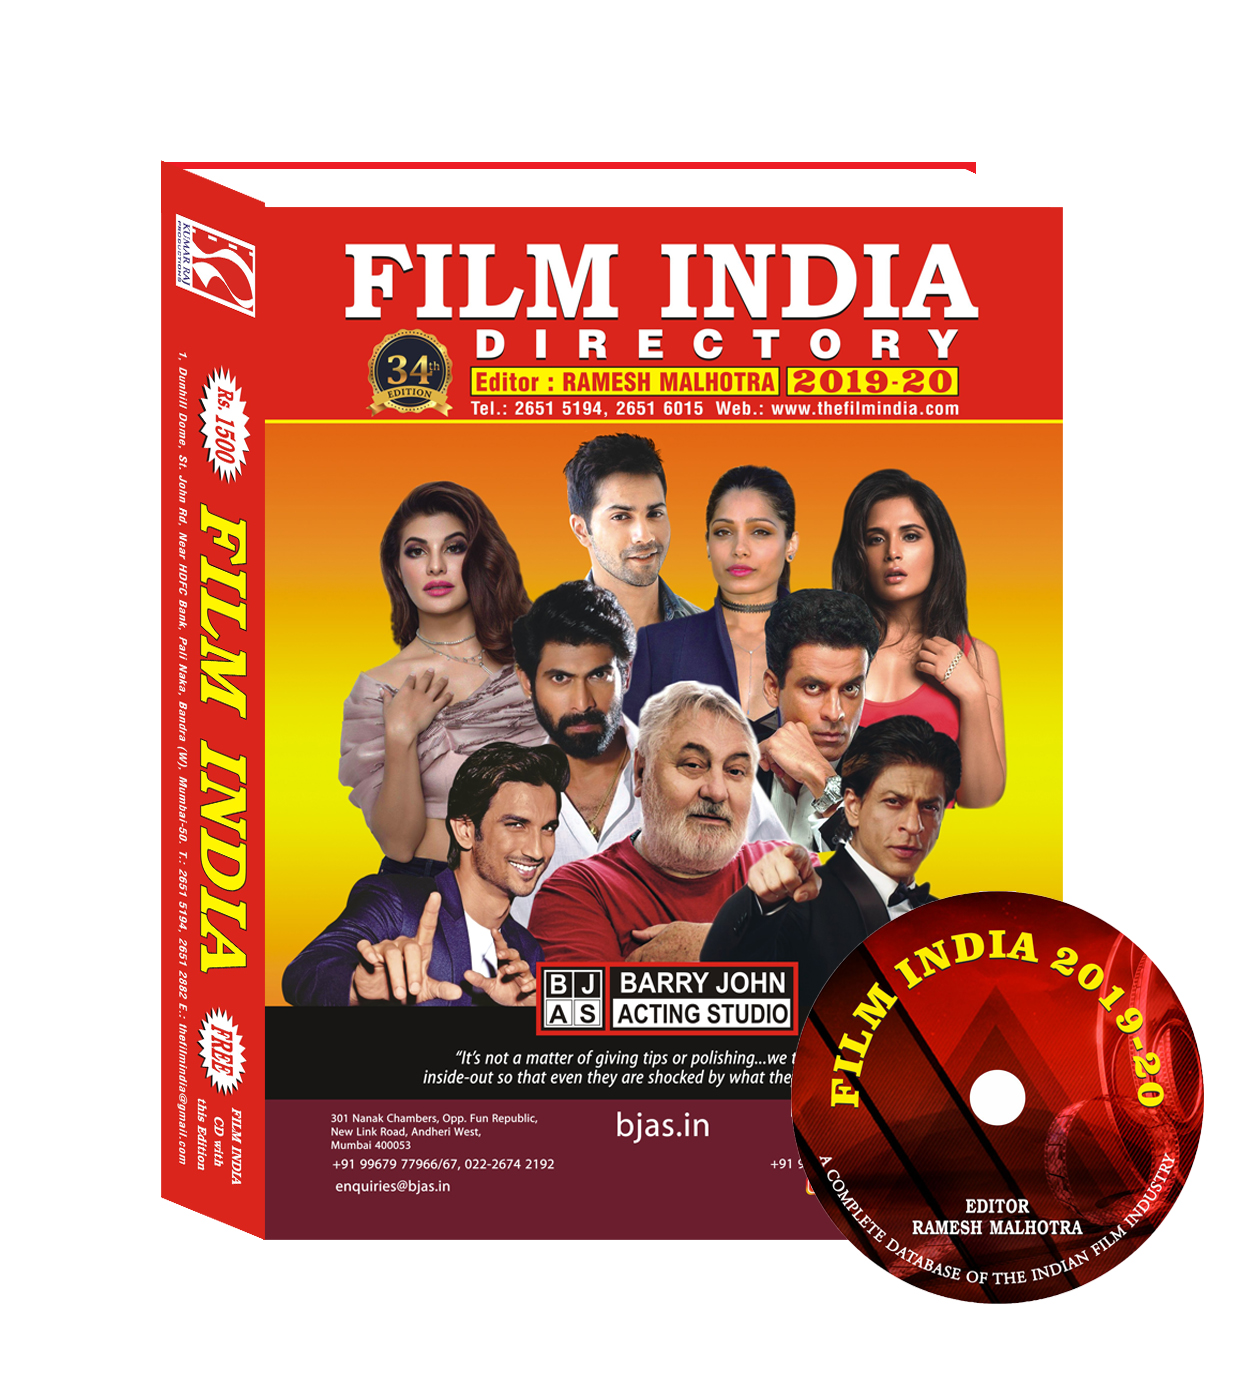 The Film India - Bollywood Contact Directory